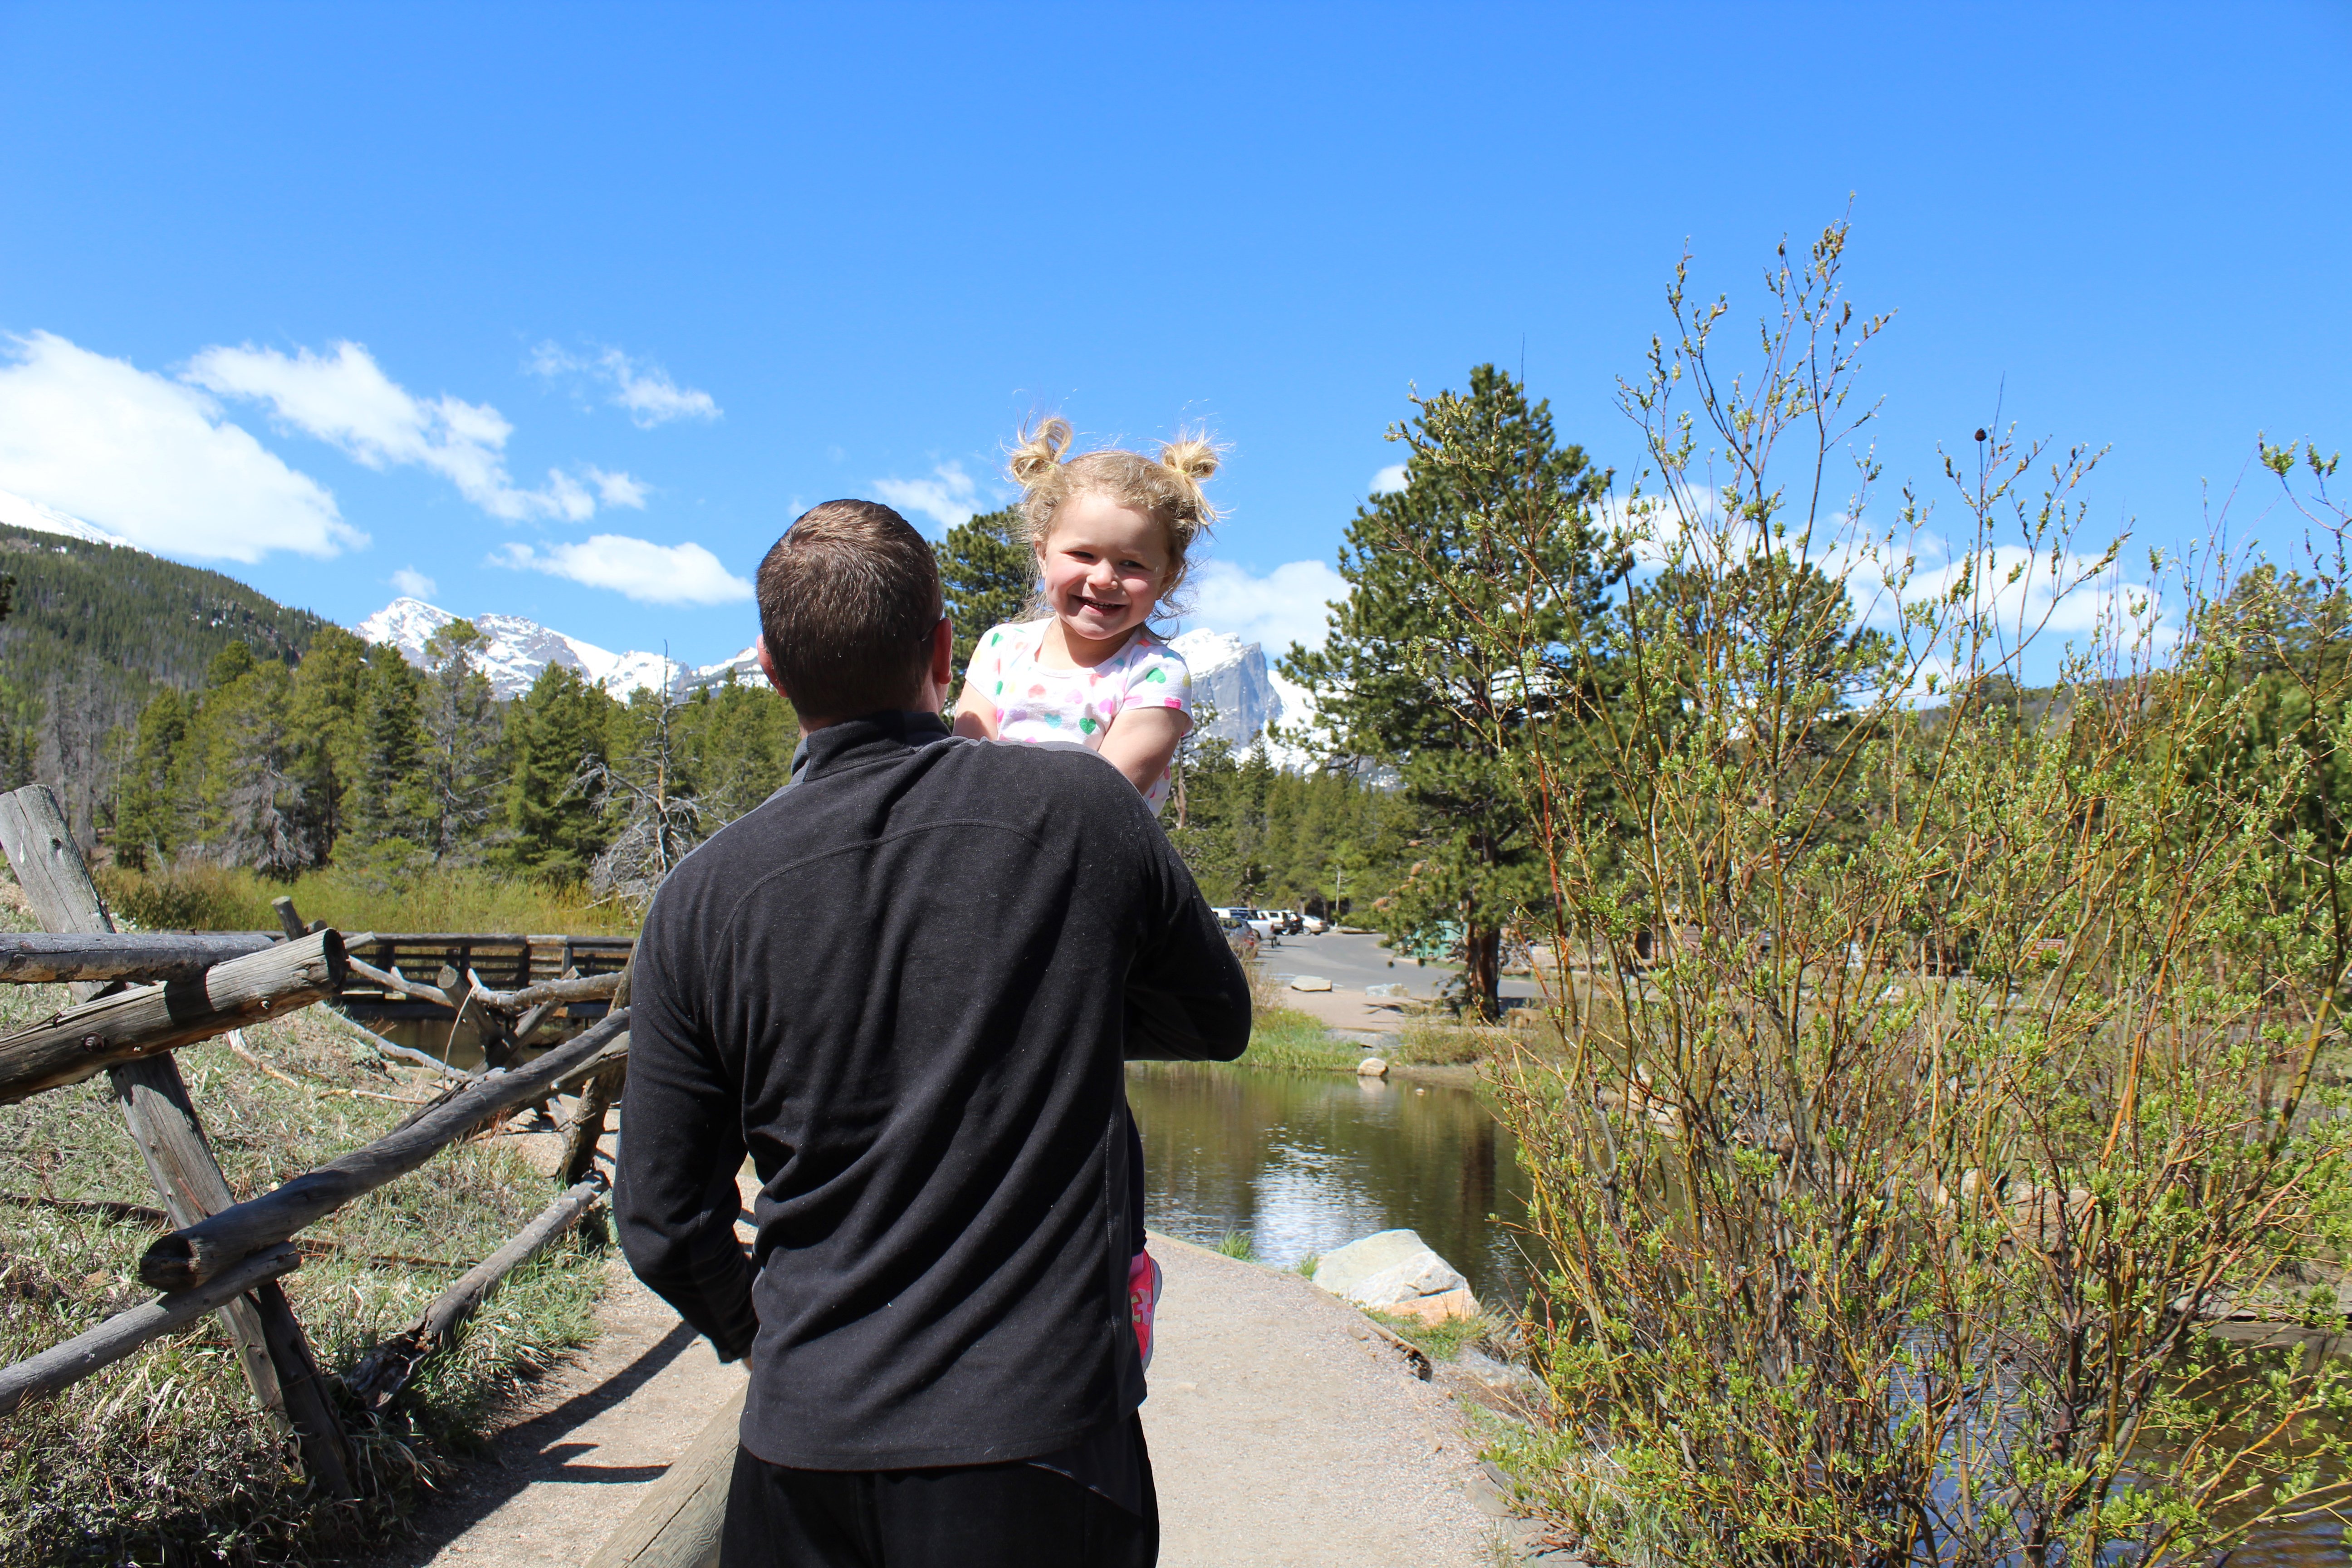 family fun in Rocky Mountain National Park